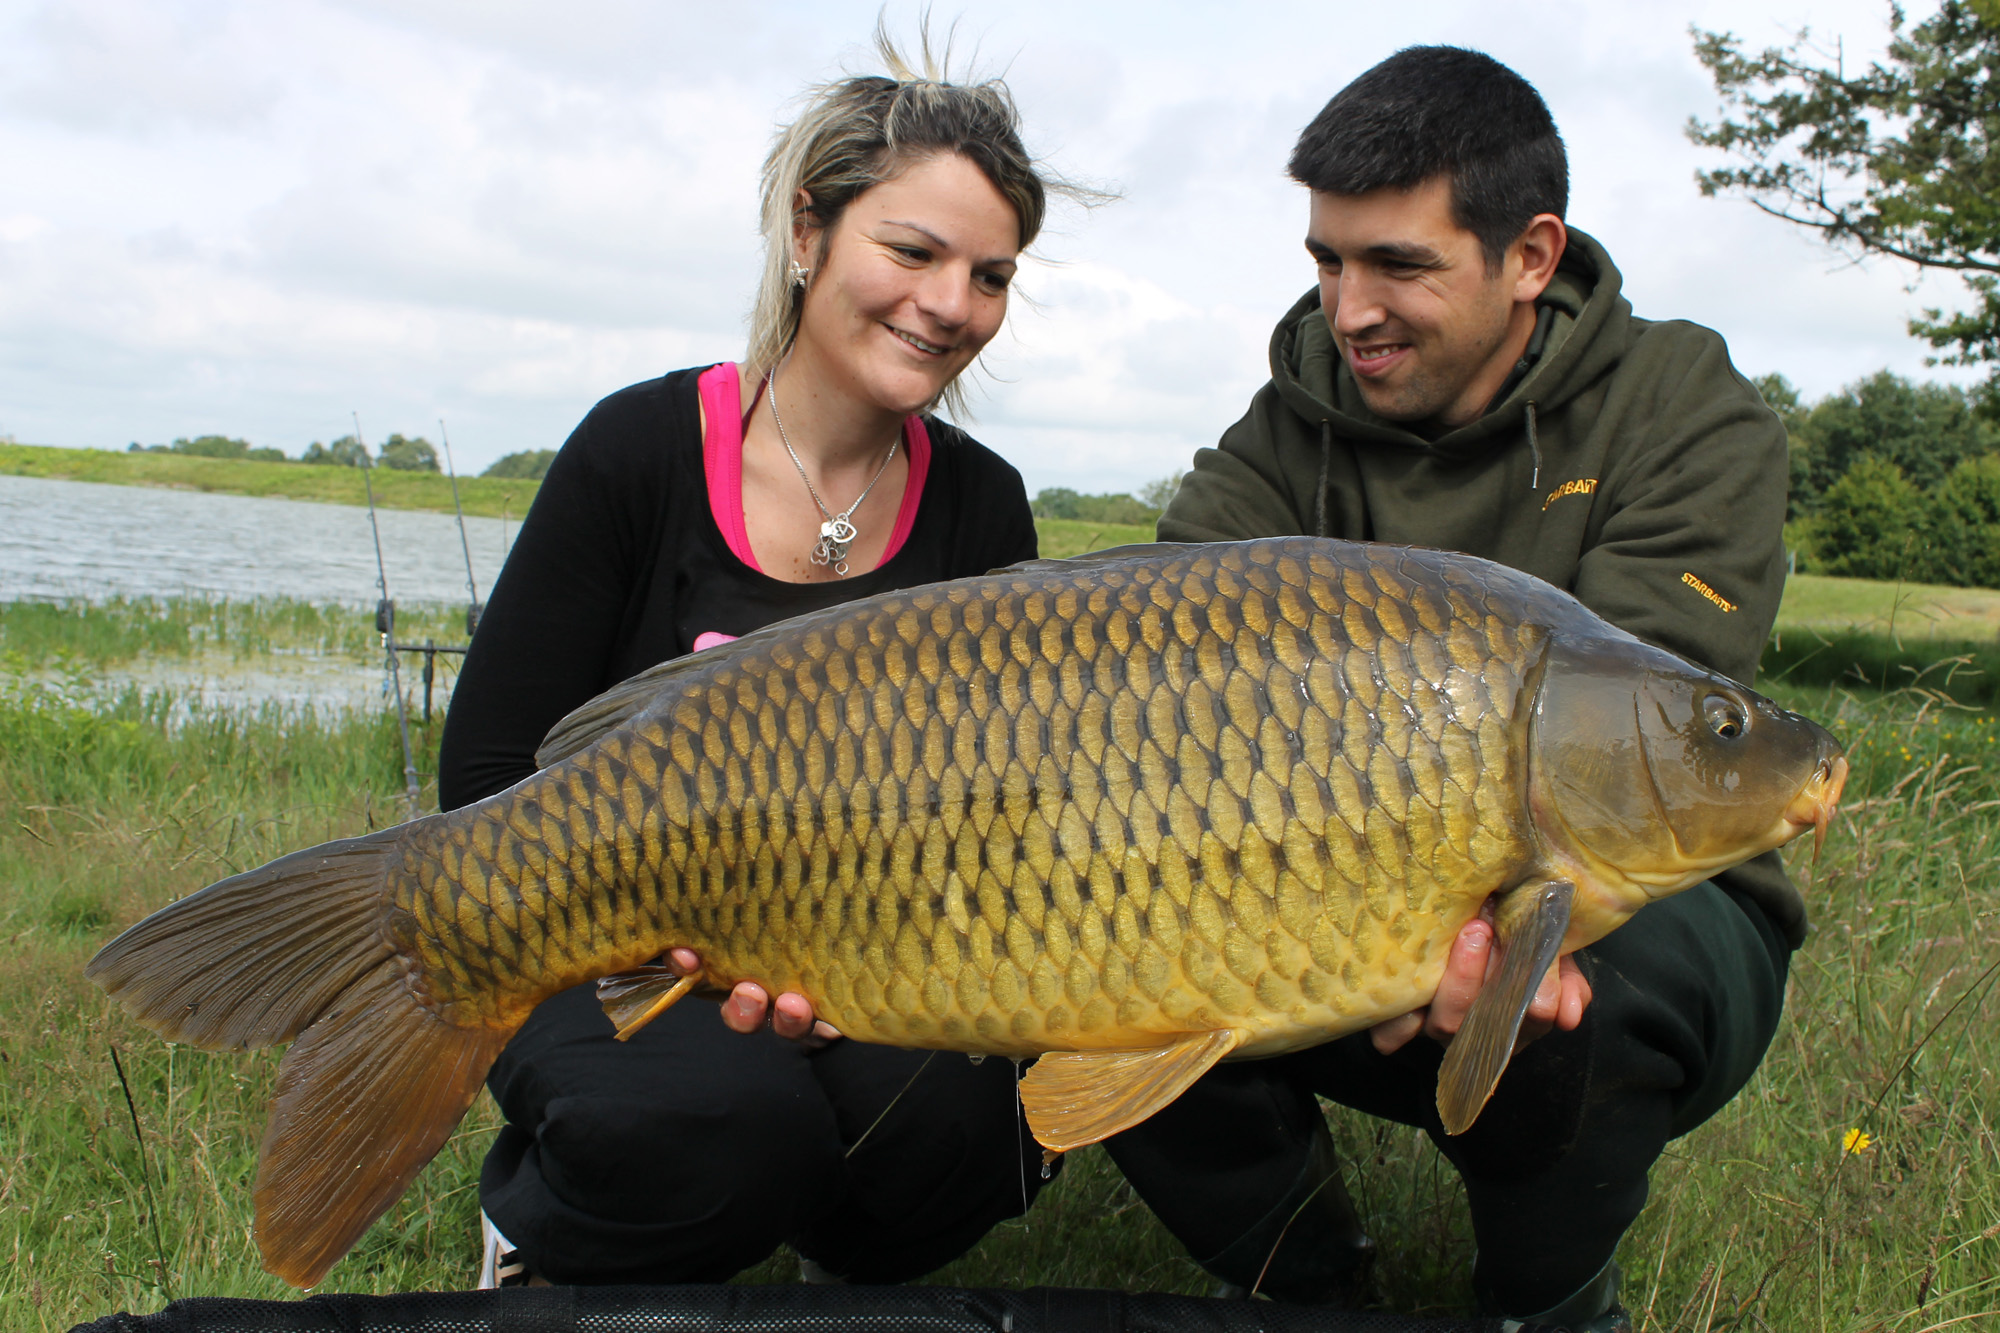 http://www.starbaits.com/fichiers/images/team/gallery/DUCERE_Cedric/10-DUCERE-CEDRIC.JPG